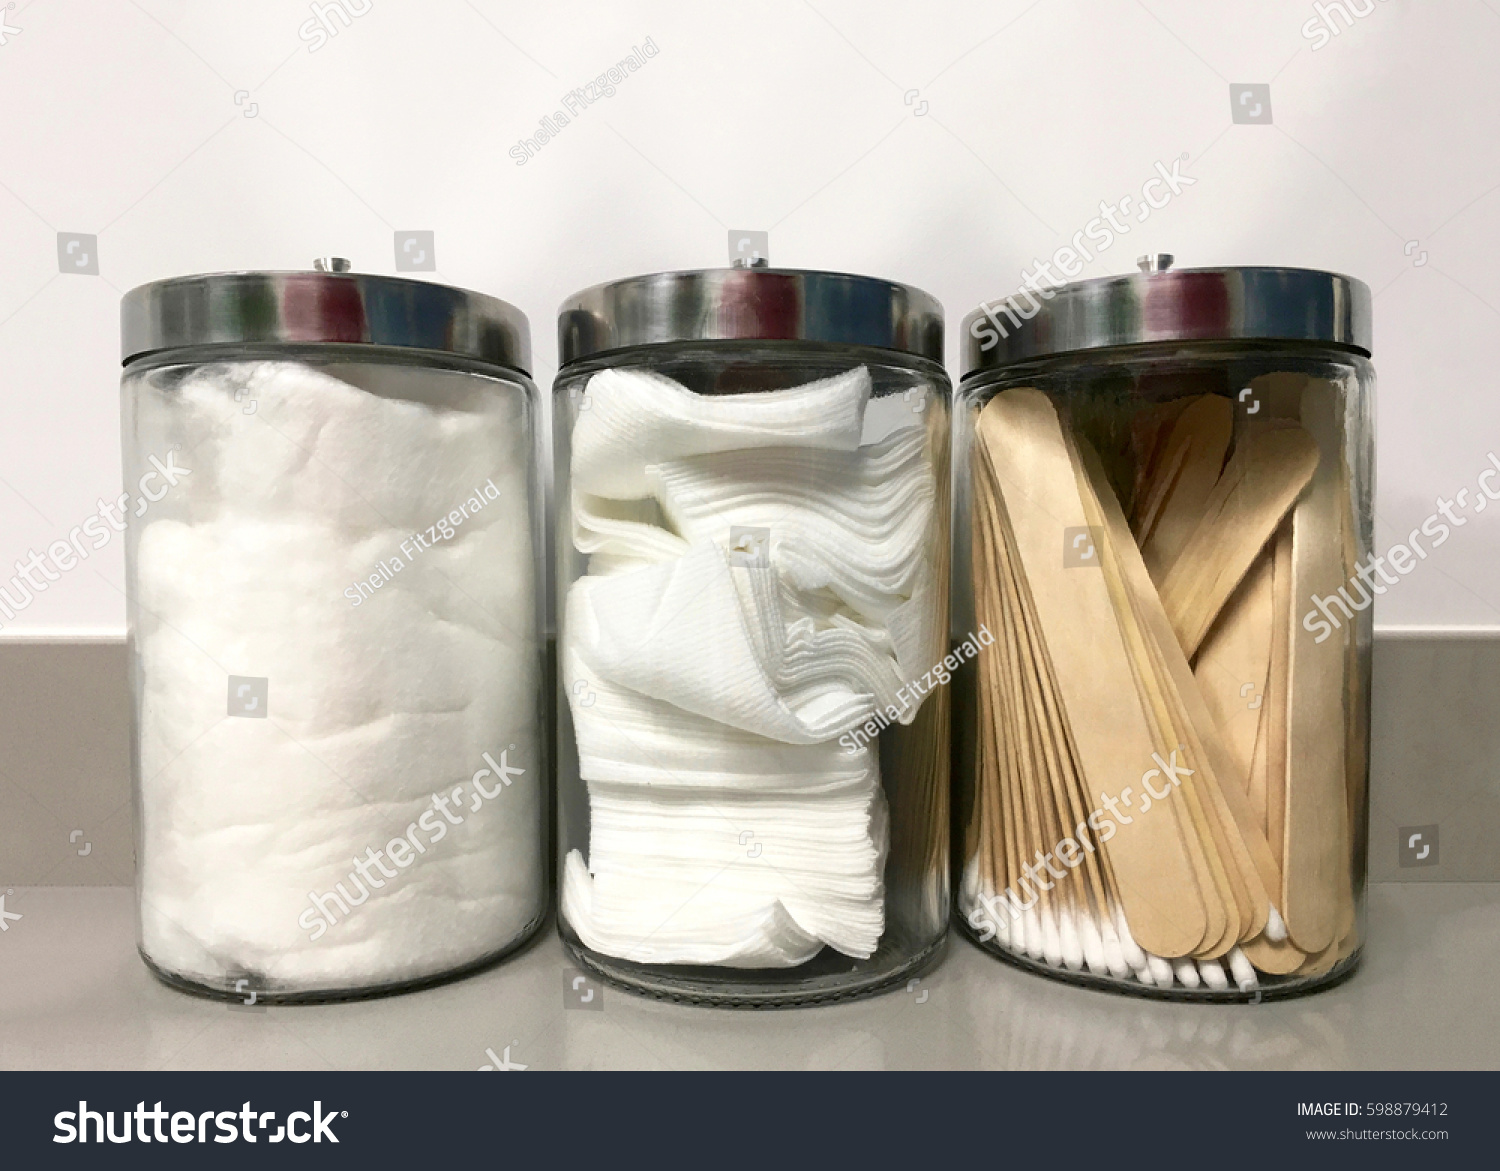 Three glass jars on medical office counter with non-sterile q-tips, tongue